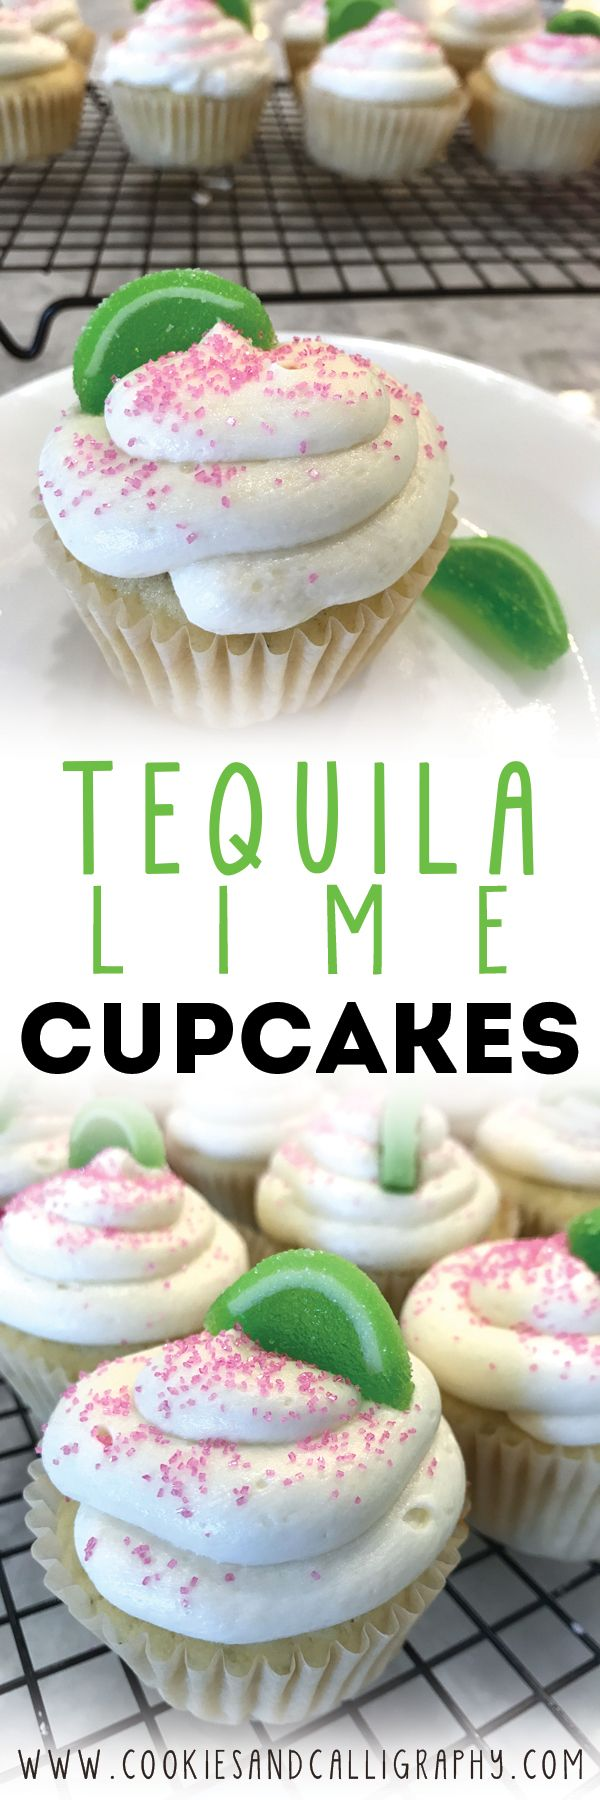 TEQUILA LIME CUPCAKES   In honor of National Tequila Day today we are so excited to share with you the official cupcake of summer, Tequila Lime Cupcakes! They have joined our list of go-to recipe favorites, and are requested all the time by family and friends.  Yes, it is true that vanilla and chocolate cupcakes are usually our jam (you can't mess with classic perfection), but these beauties are true showstoppers! The creamy vanilla and lime flavors infused with the perfect kick of Tequila…